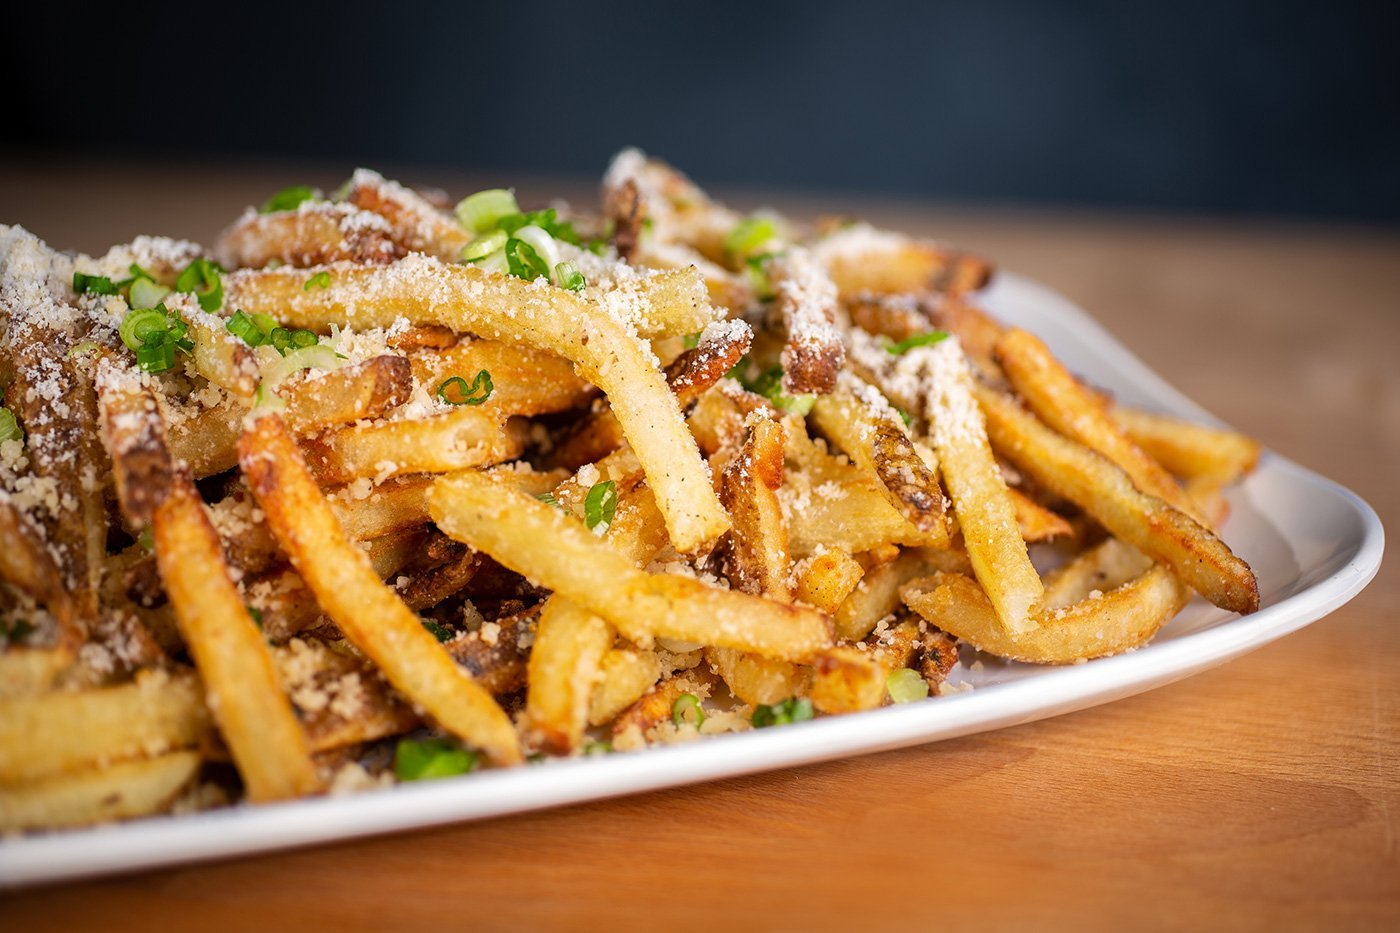 French Fries - Food Photography